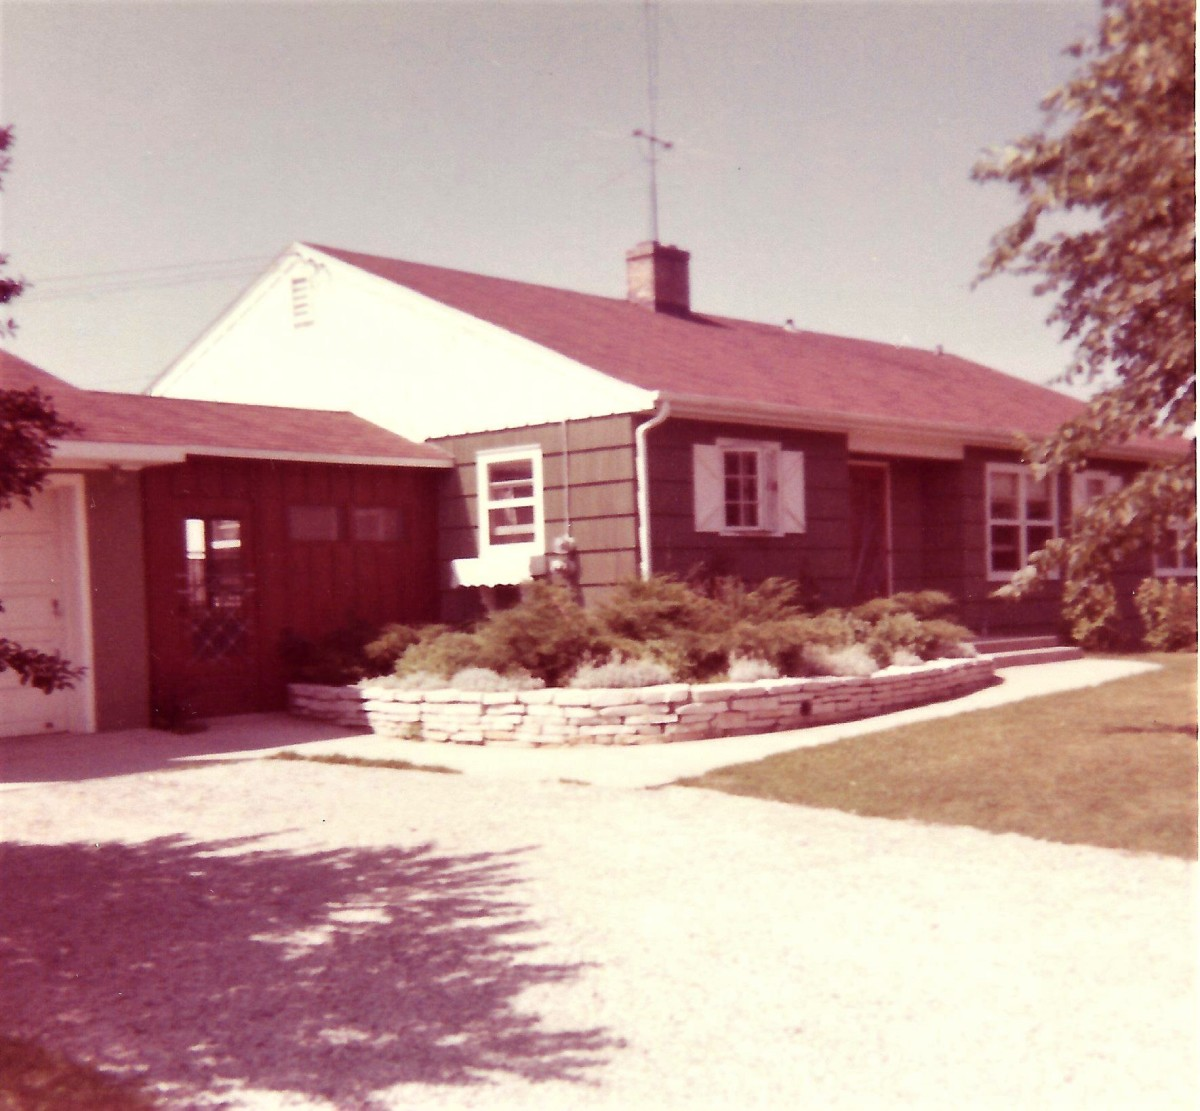 My childhood home in Wisconsin showing TV antenna on roof